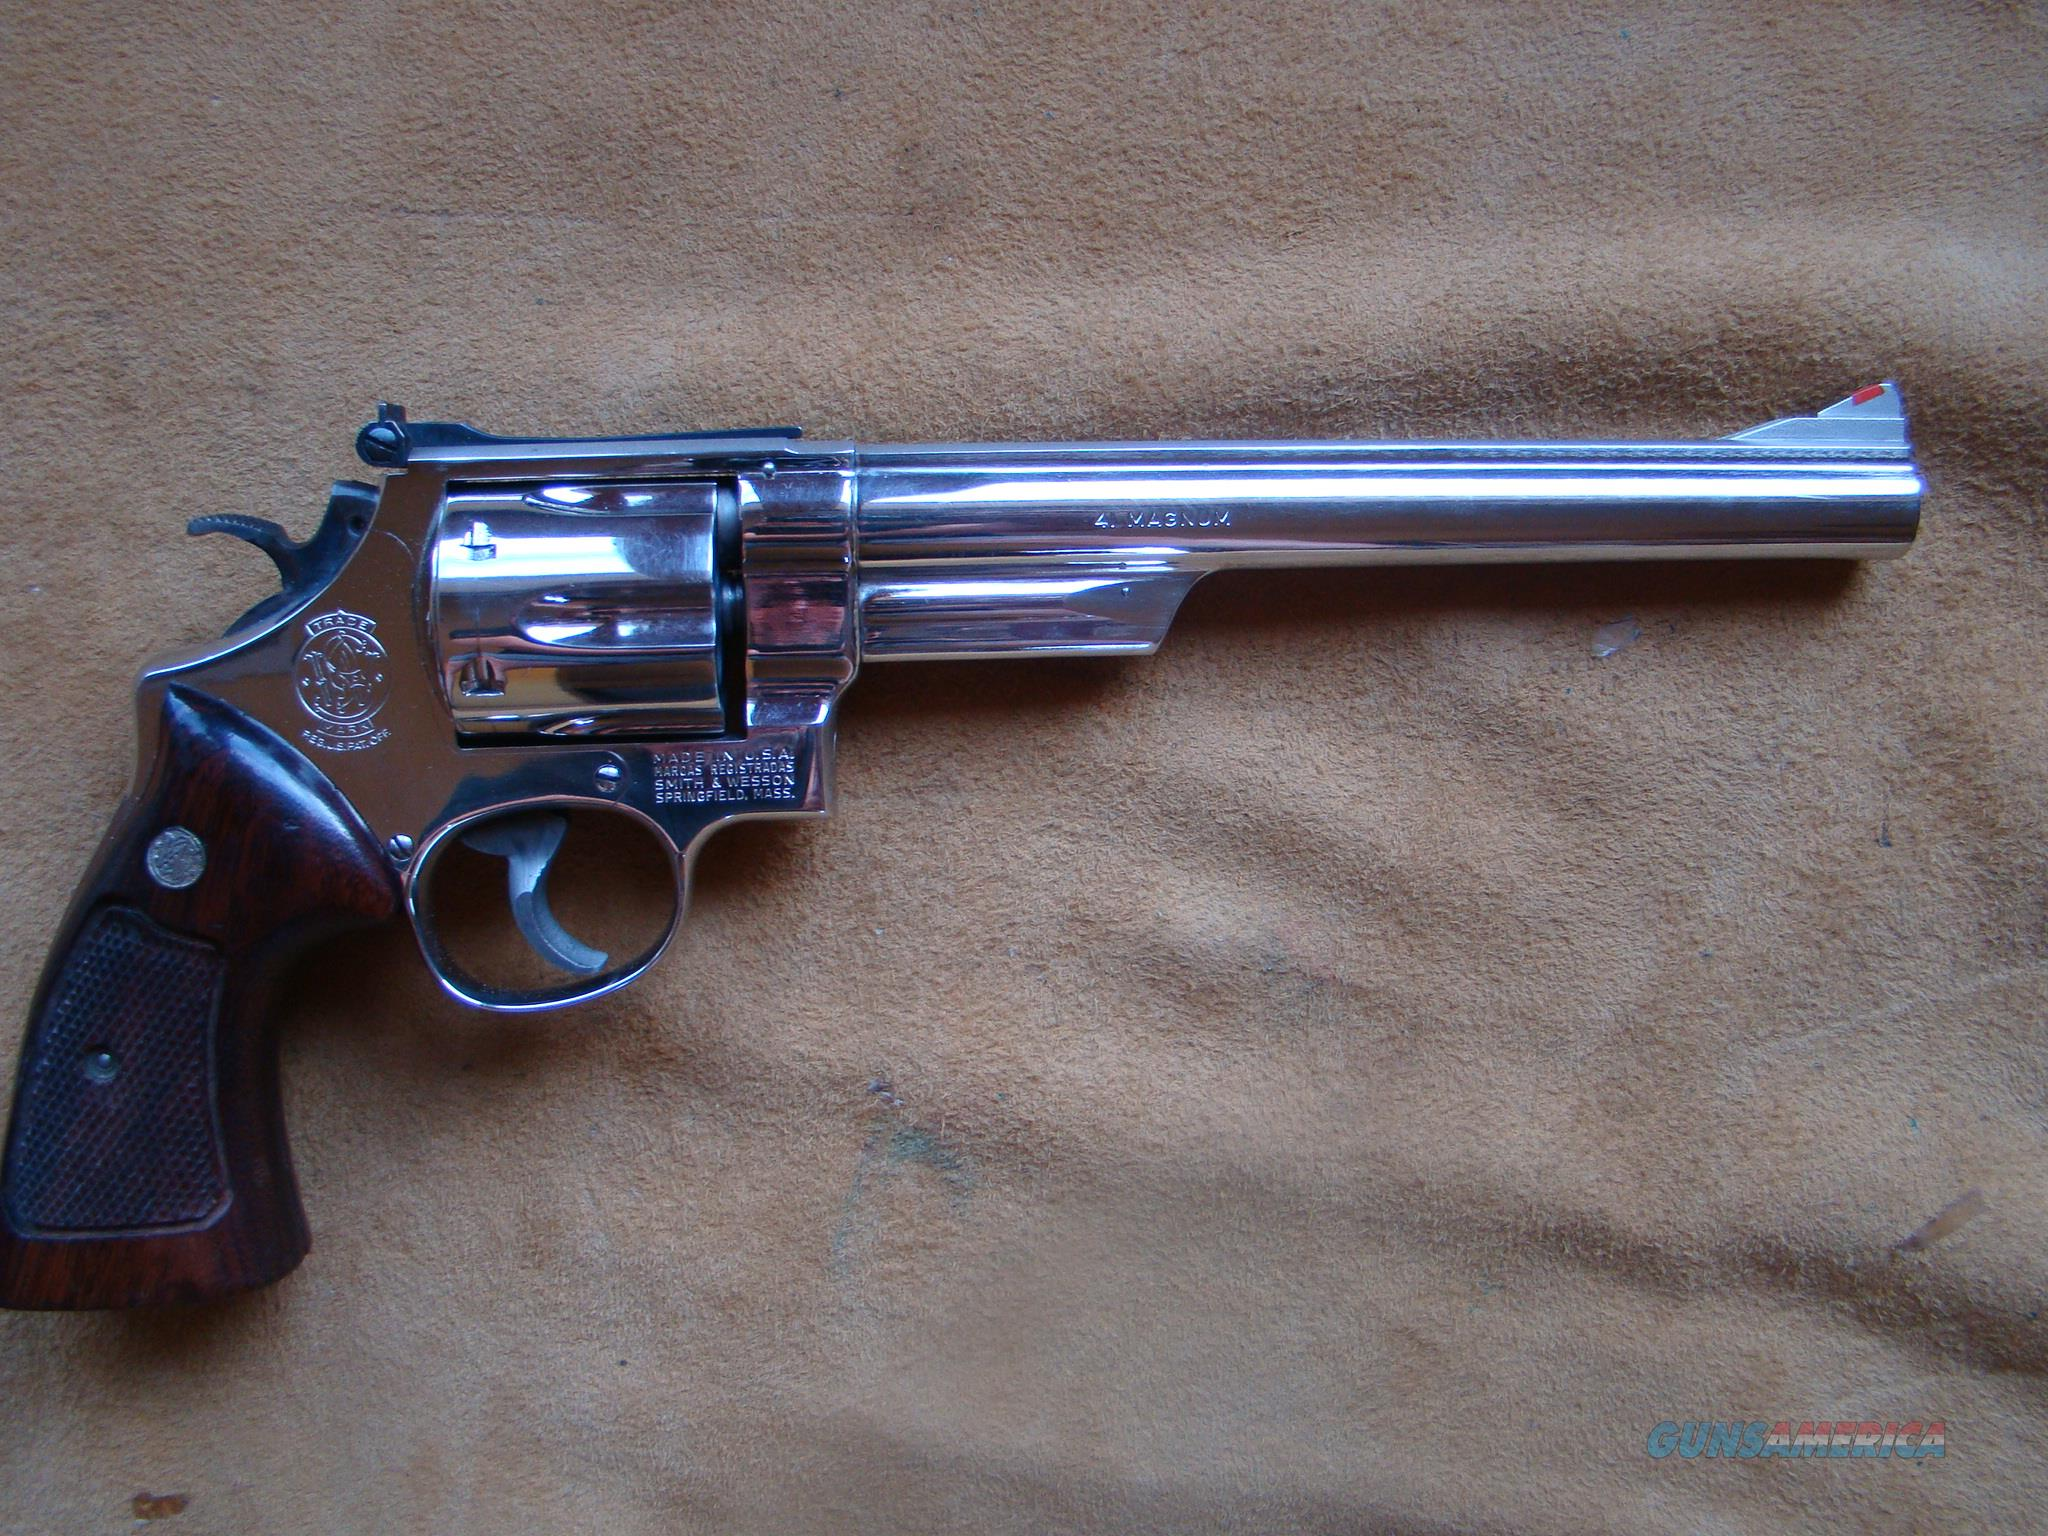 SMITH & WESSON   57 NO DASH  41 mag  8 3/8  in barrel NICKEL  Guns > Pistols > Smith & Wesson Revolvers > Full Frame Revolver